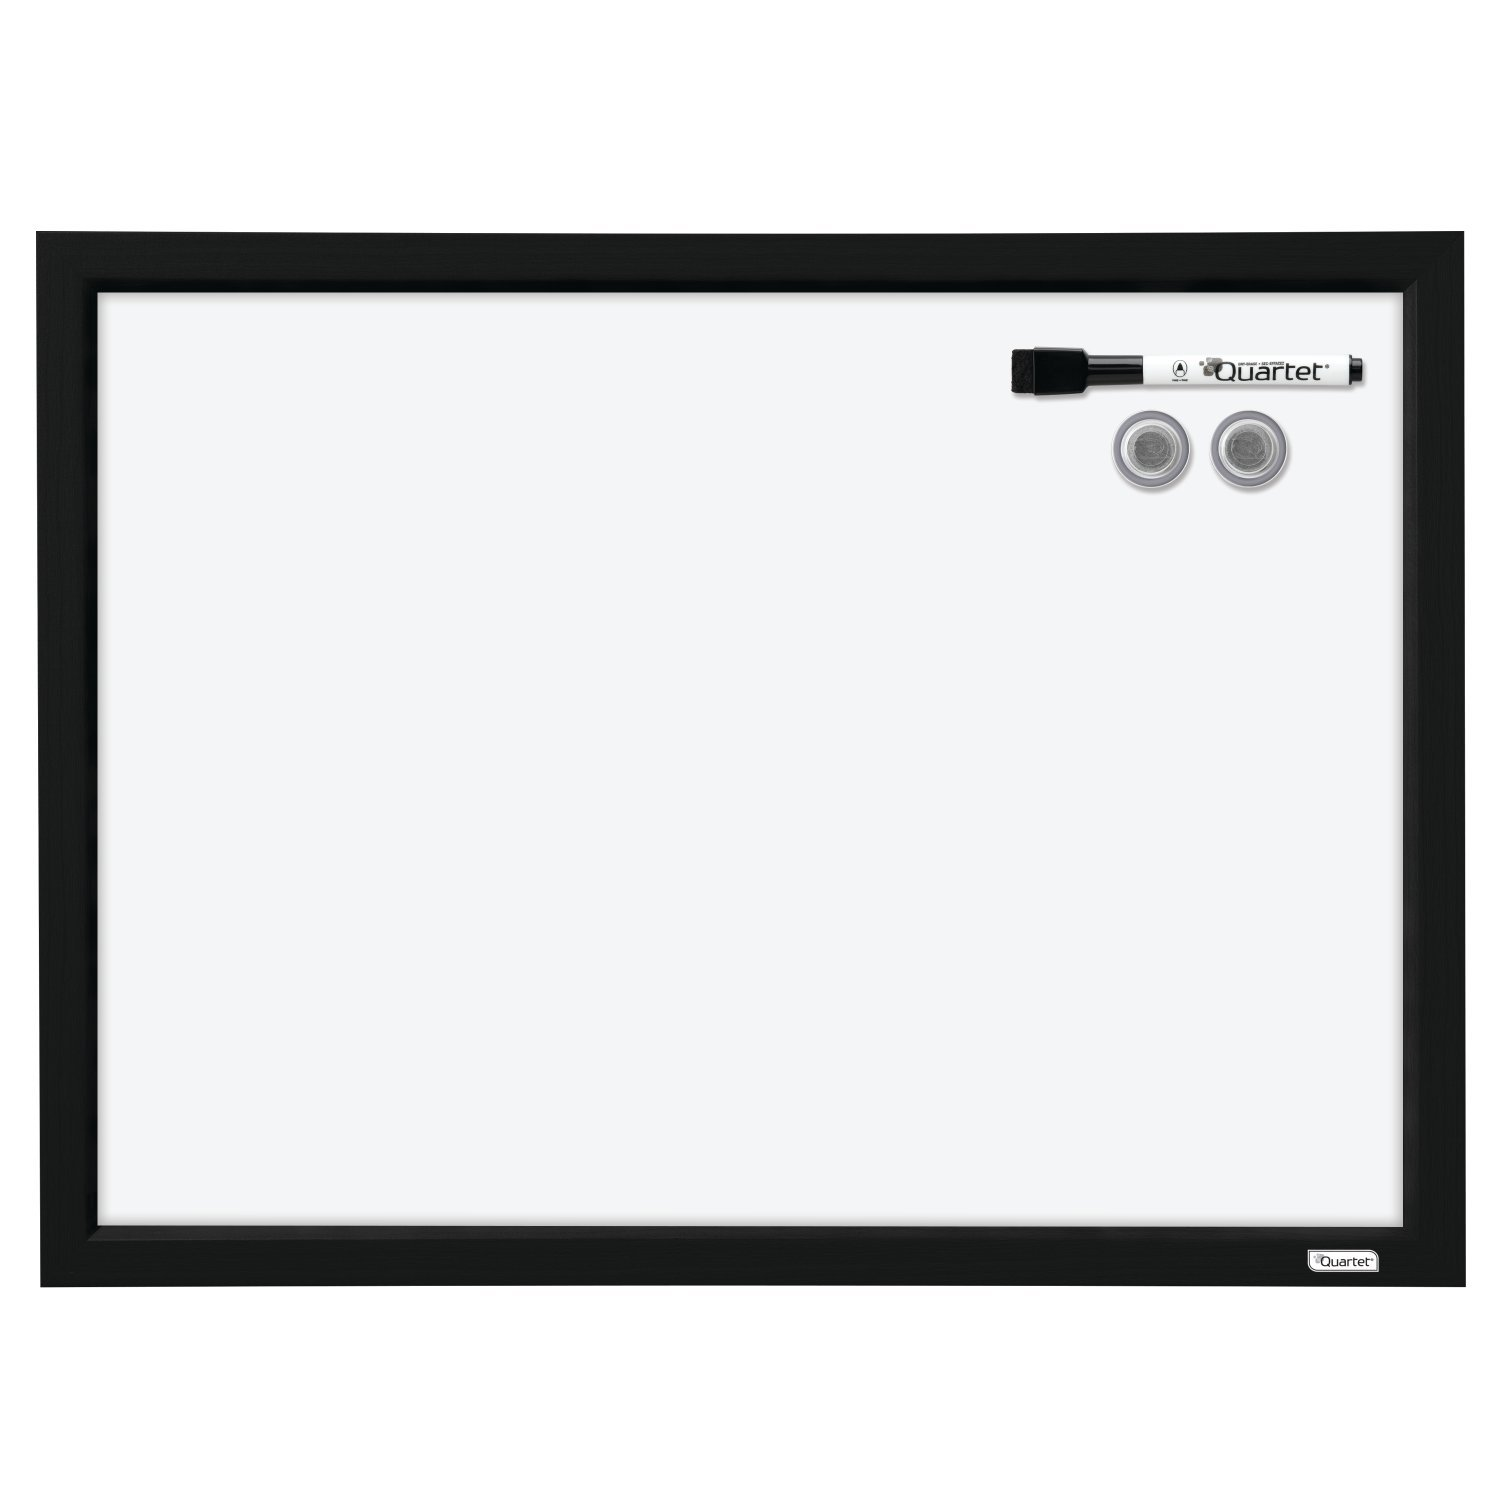 Quartet Dry Erase Board, Whiteboard/White Board, Magnetic, 17'' x 23'', Black Frame (MWDW1723M-BK)